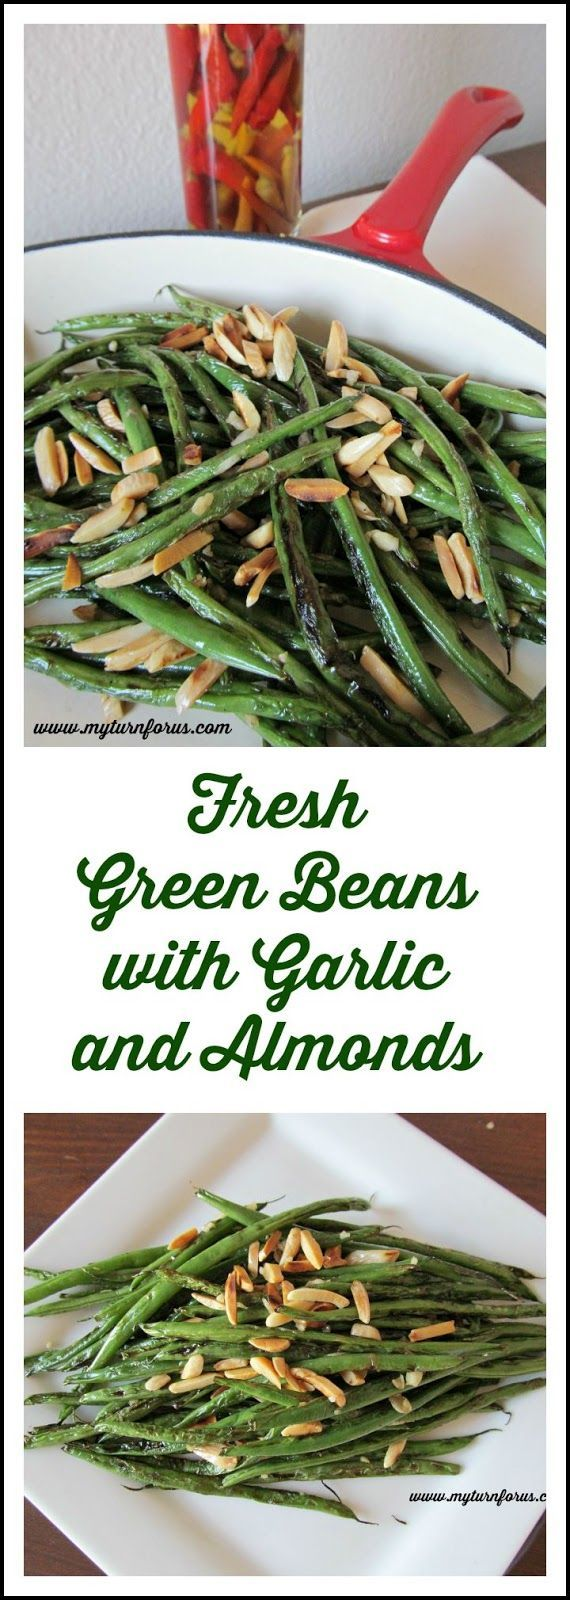 Fresh green beans are delicious stir-fried with a little garlic, a few seasonings and topped with toasted almonds!       http://www.myturnforus.com/2015/08/fresh-green-beans-with-garlic-and.html